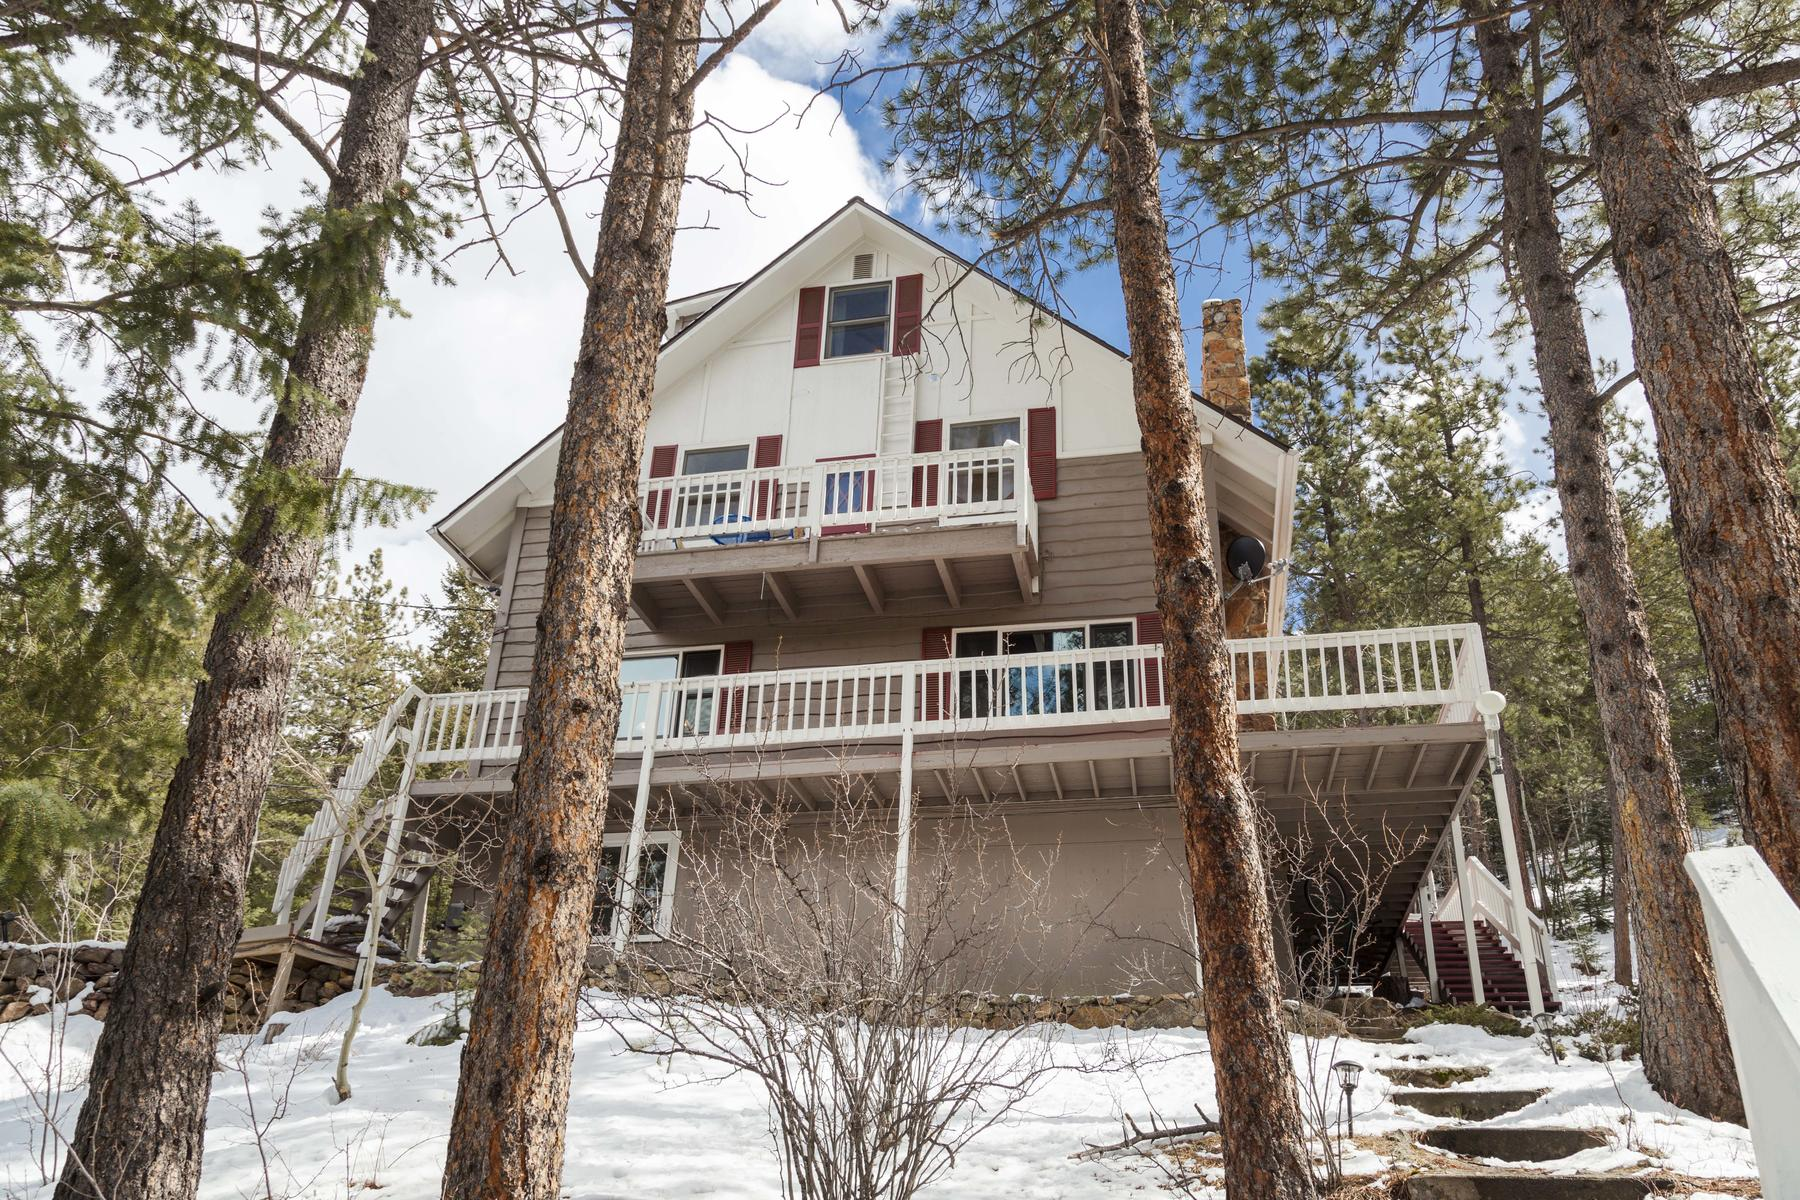 Single Family Home for Active at Stunning Mountain Home 706 Skyline Drive Idaho Springs, Colorado 80452 United States